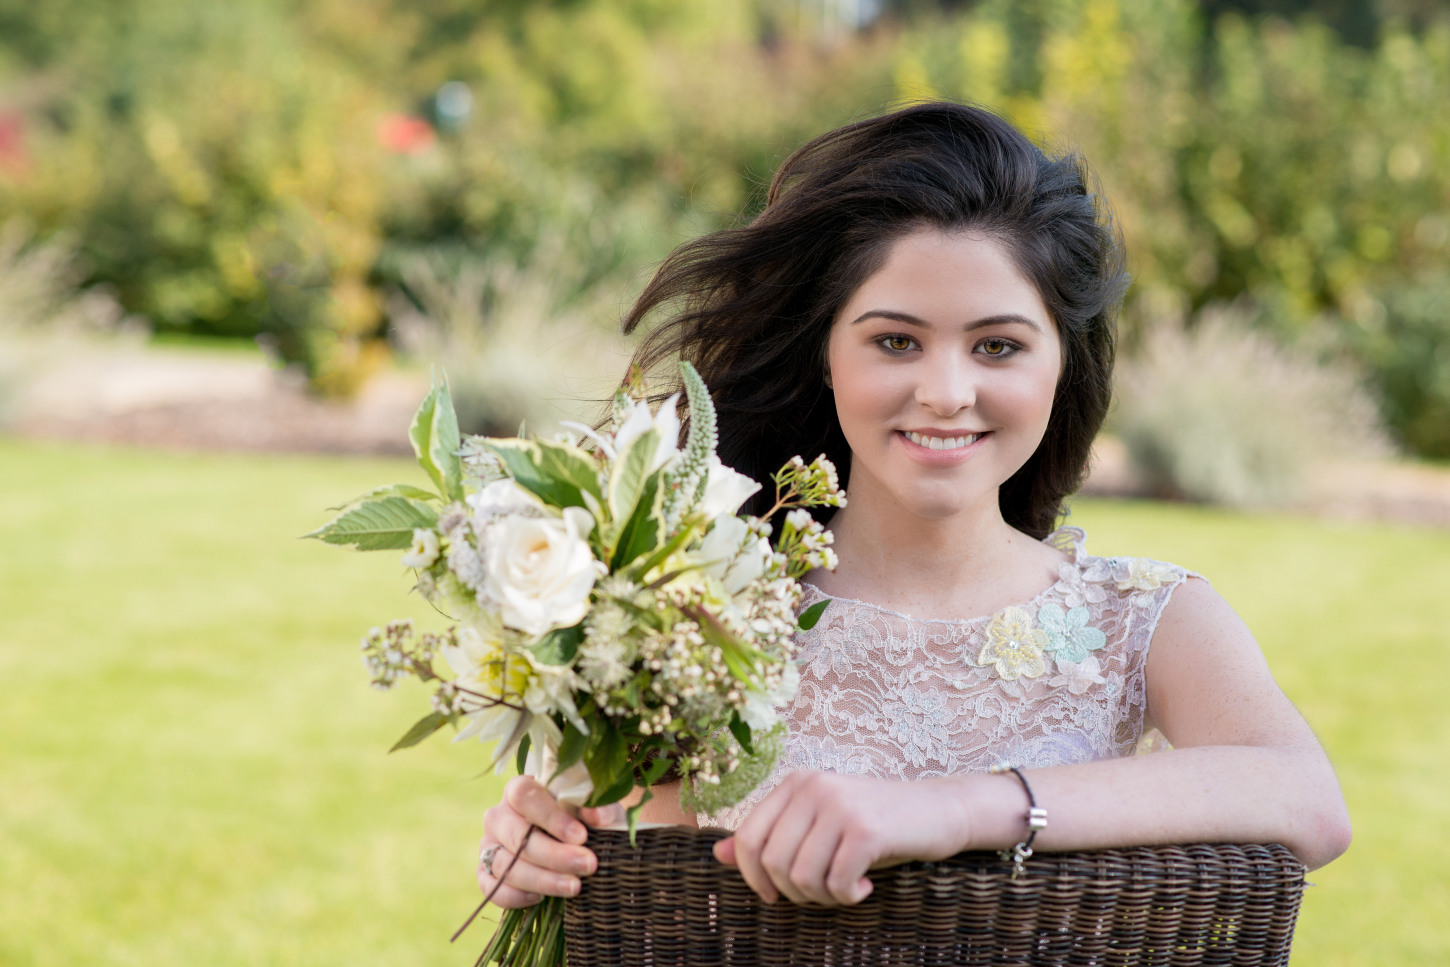 Beautiful bride with natural wedding makeup holding her stunning bouquet of flowers